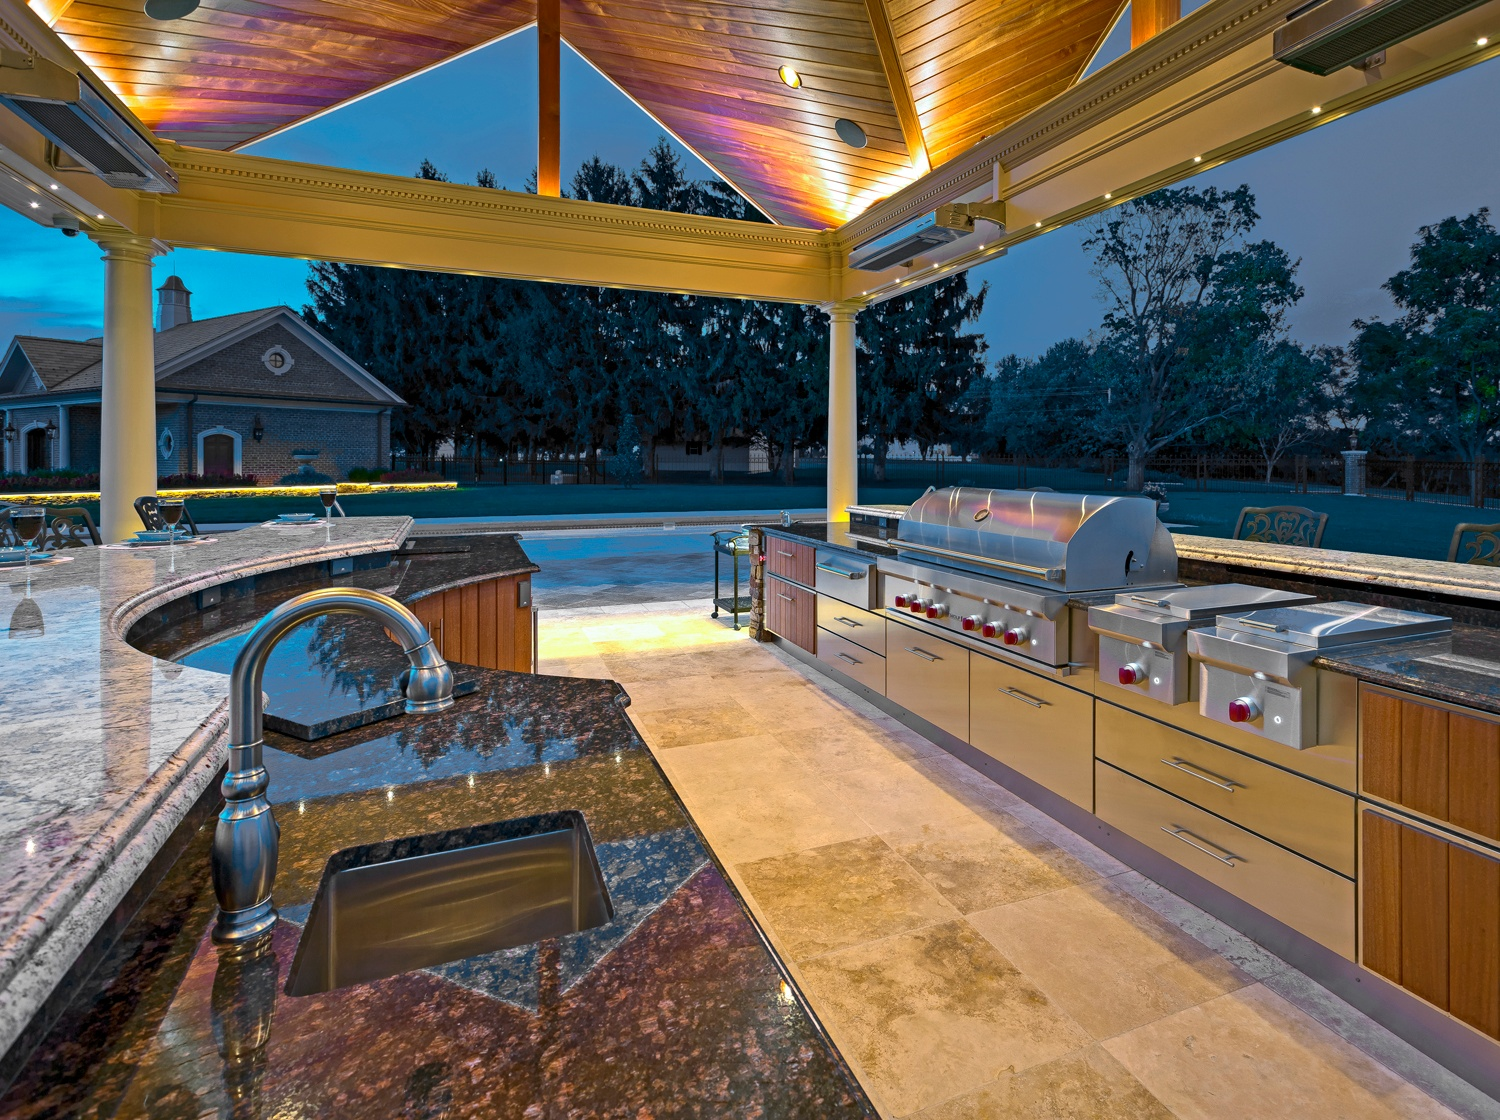 landscape design case study: york, pa outdoor kitchen and pavilion